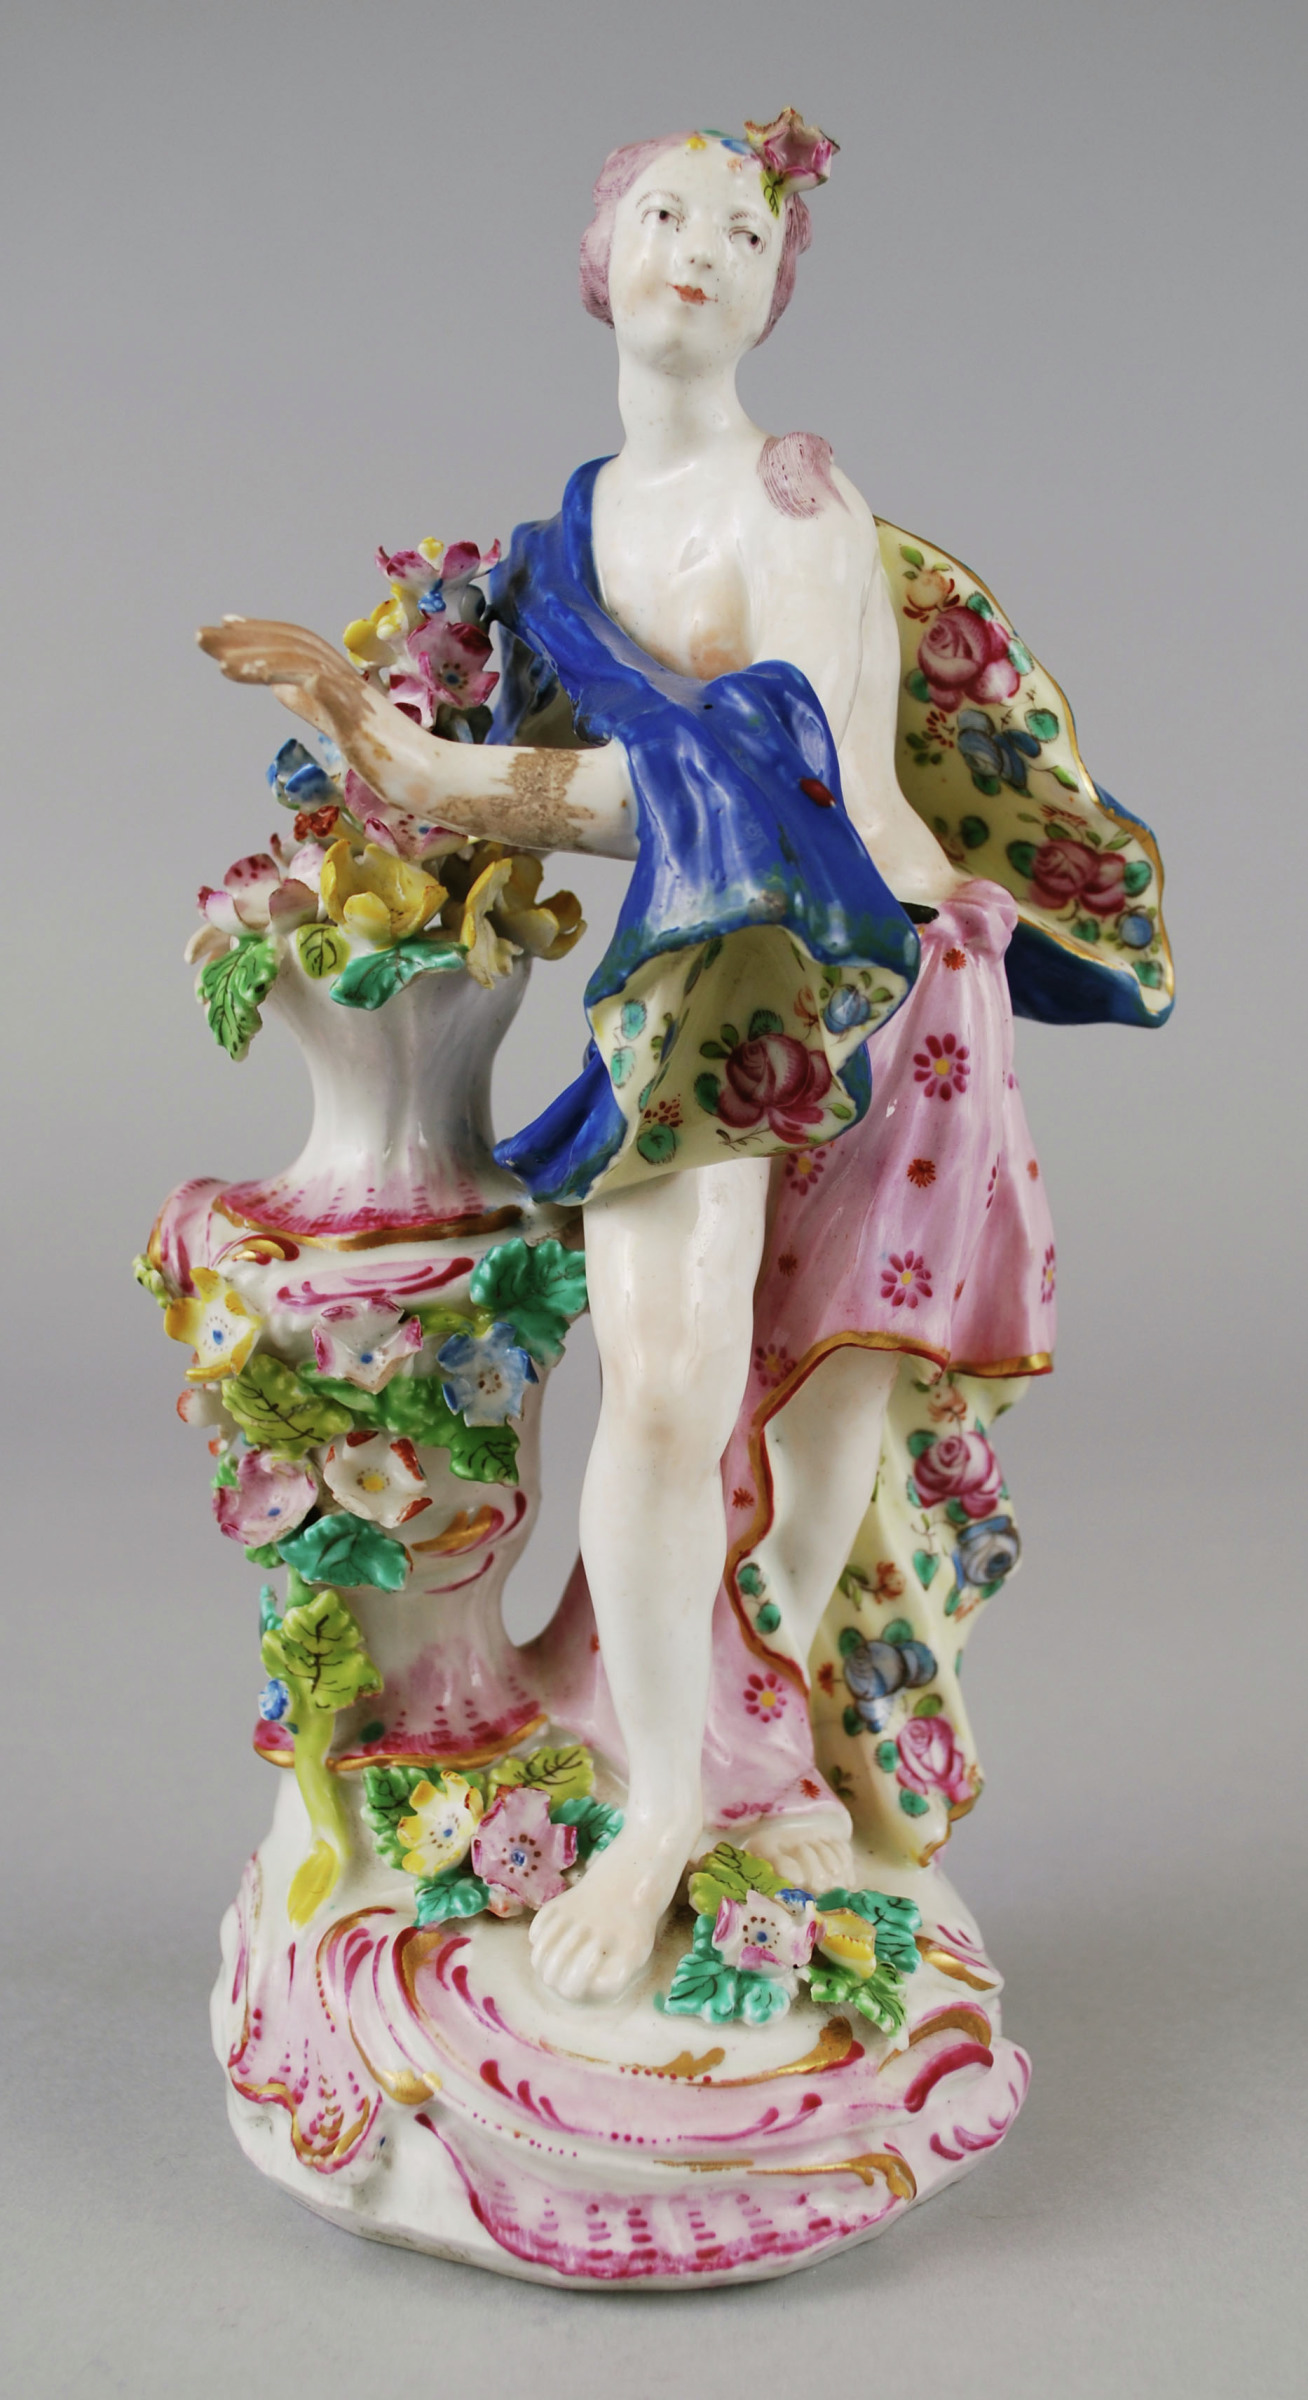 Bow porcelain female figure 'Spring.' She stands on a circular rococo base with painted scrolls in burgundy and gold. She is draped in a fabric painted in a floral pattern from one side and blue on the other side. On one side of her is pedestal decorated with flowers and leaves. There is also a hole in back for bocage or candlestick.